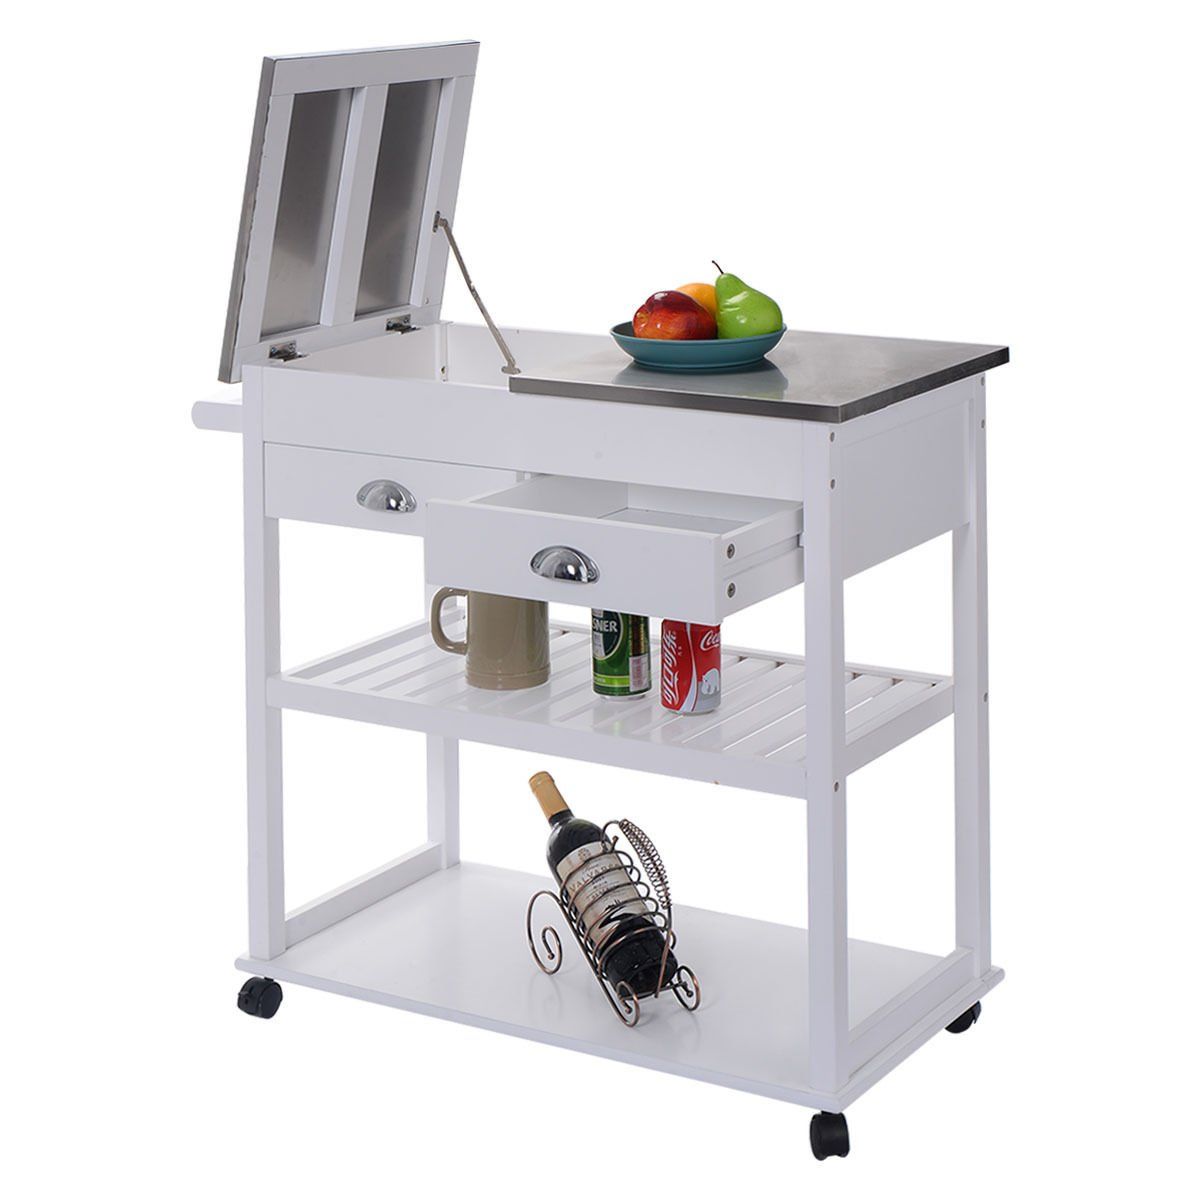 Amazon com eminentshop rolling kitchen trolley cart stainless steel flip top w drawers white kitchen islands carts